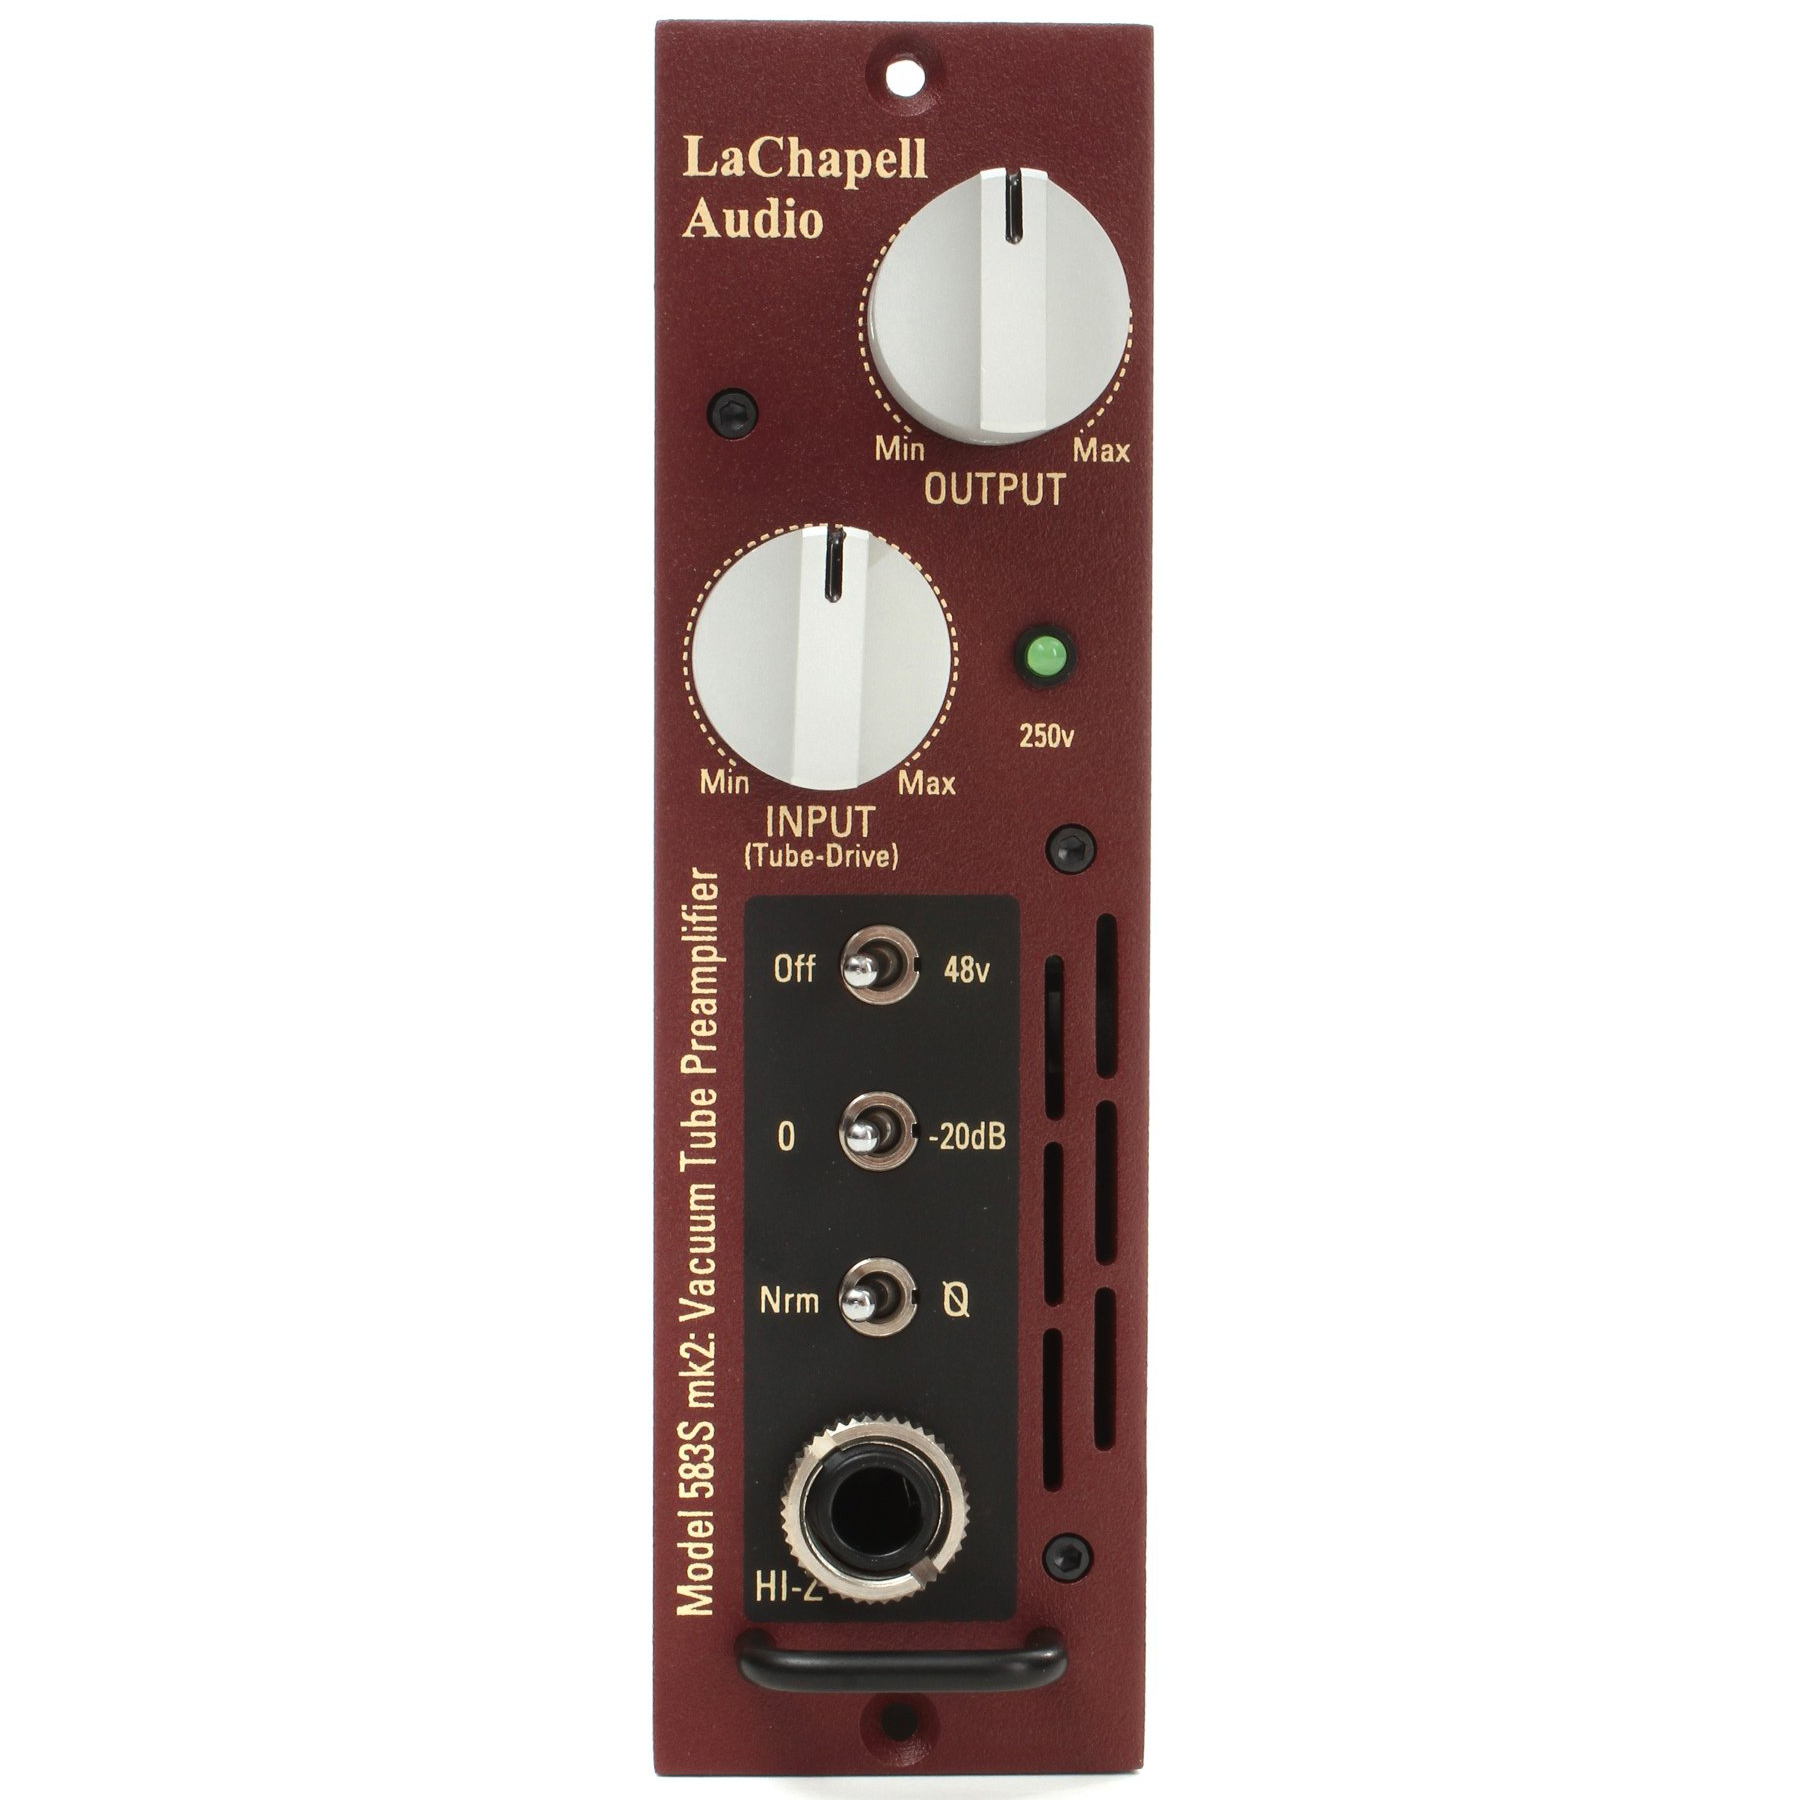 Photo of the LaChapell 583S mk2 from  Sweetwater.